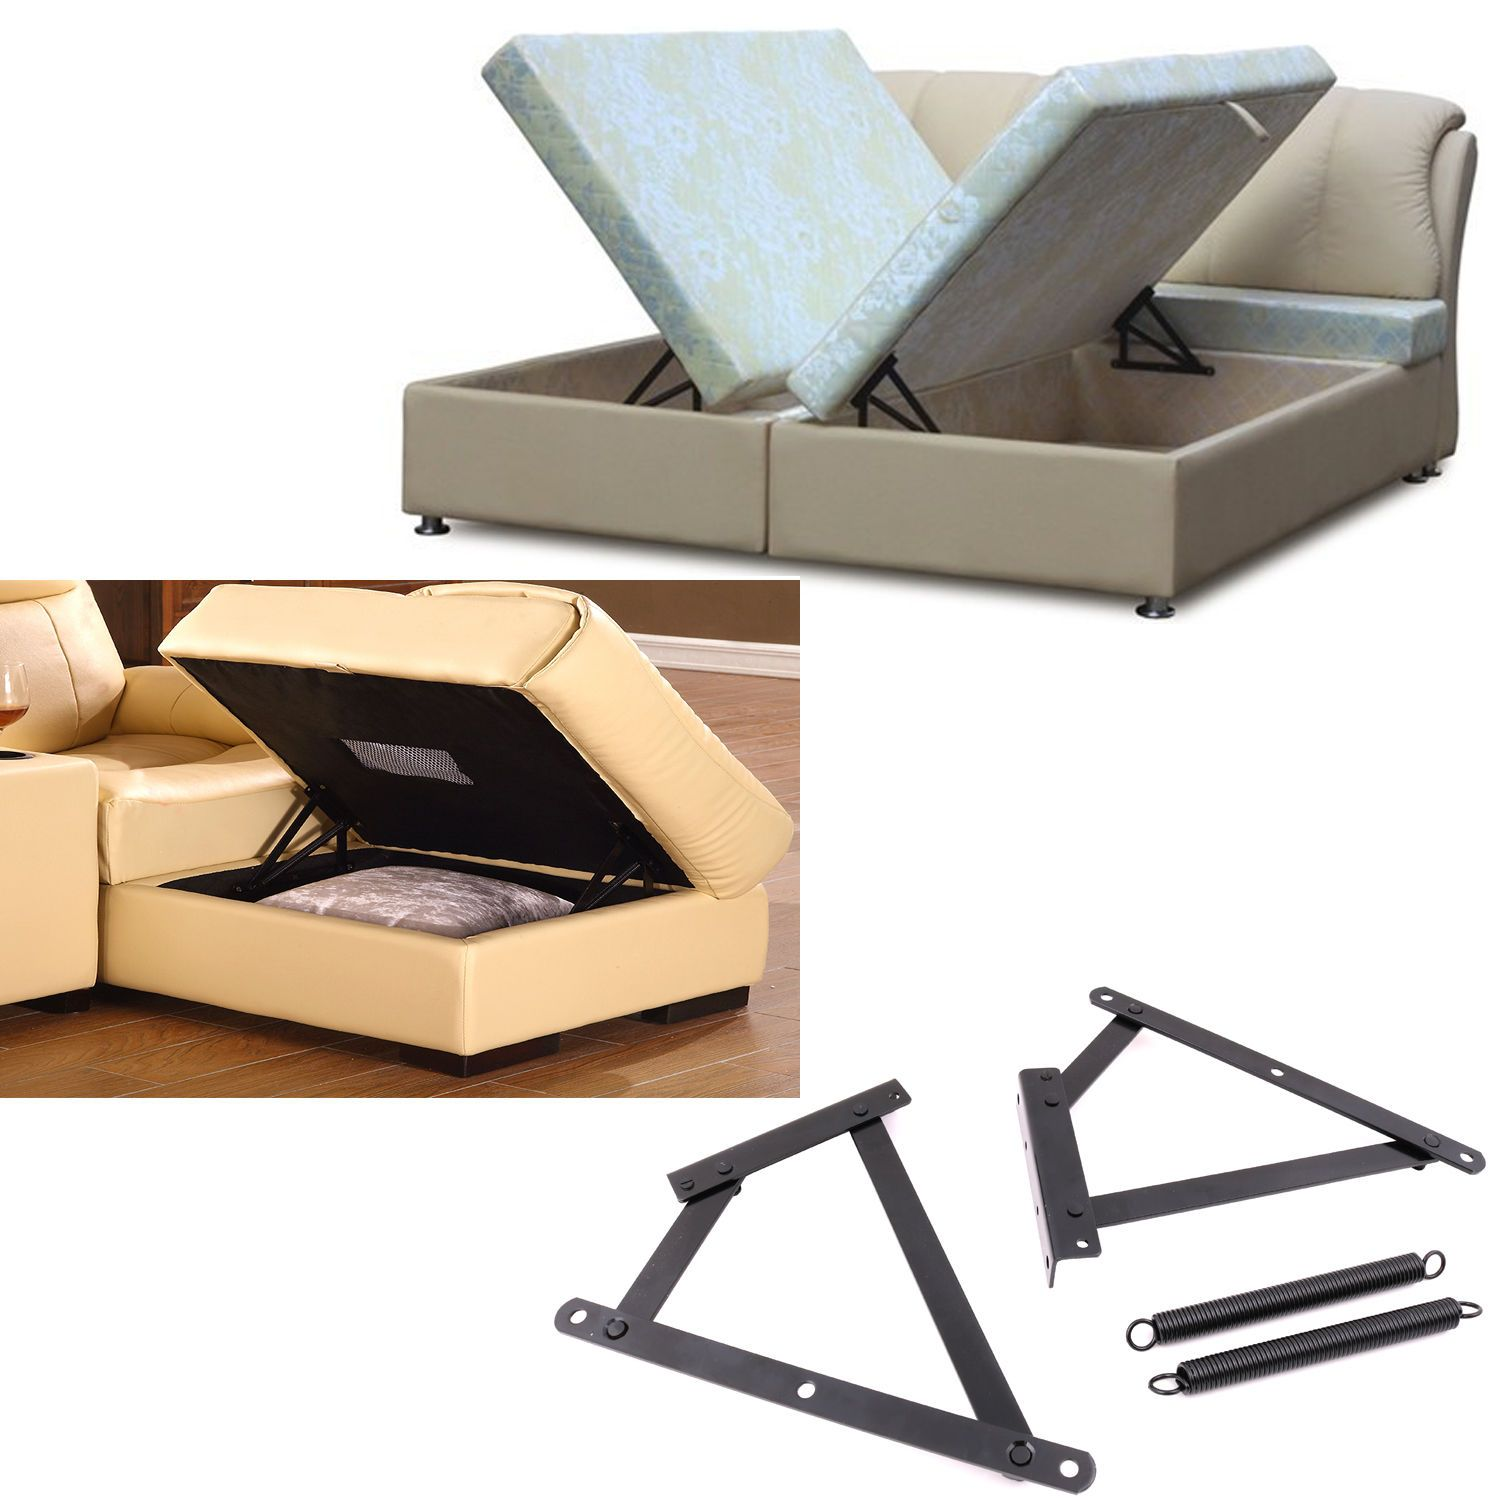 Mechanisms Can Be Oriented To Open From The Side Of The Bed Or The End Of The Bed Comes With